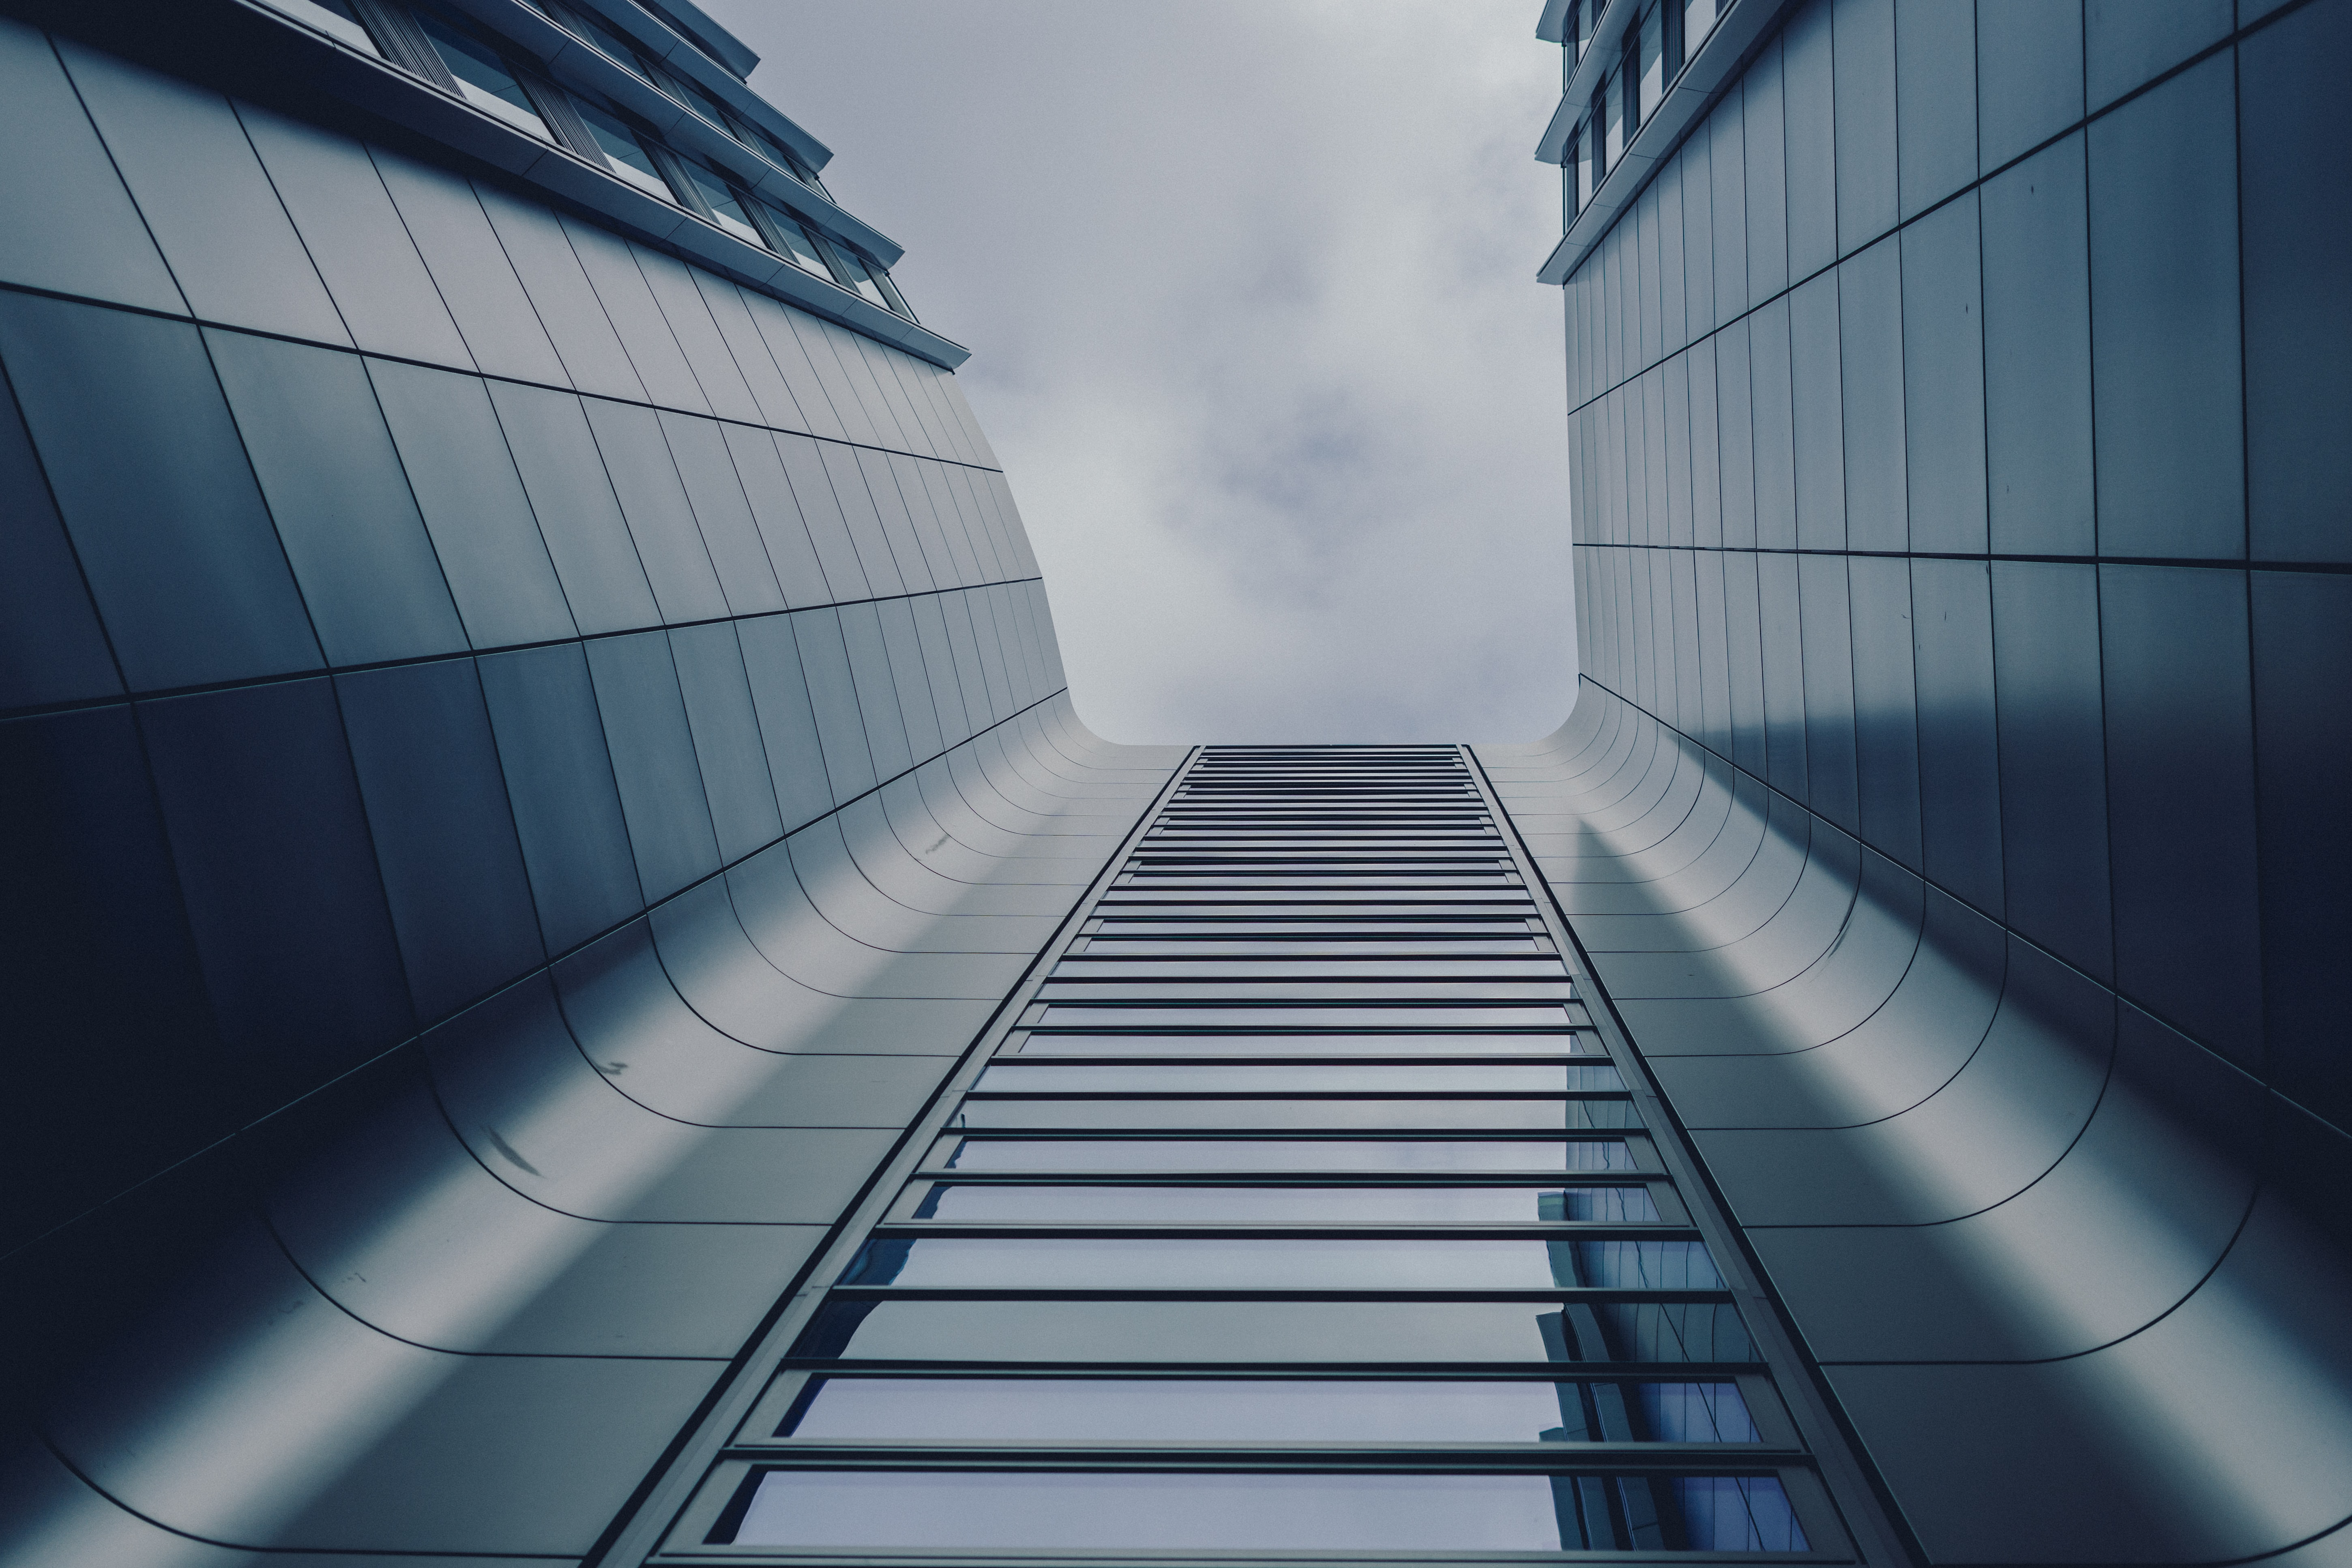 worms eyeview of gray building